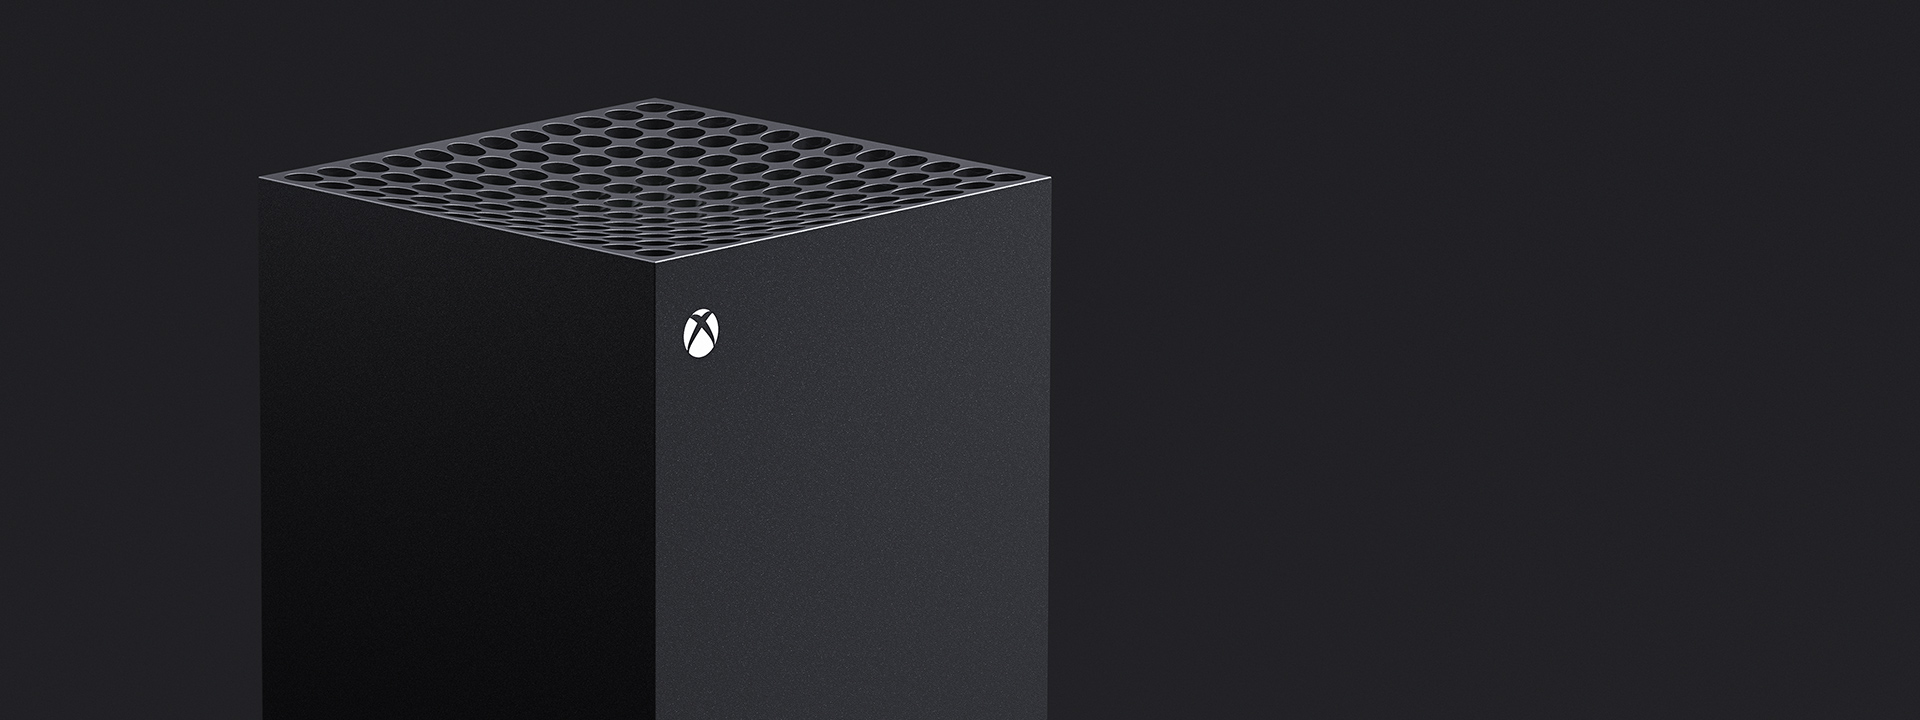 Close up view of an Xbox Series X